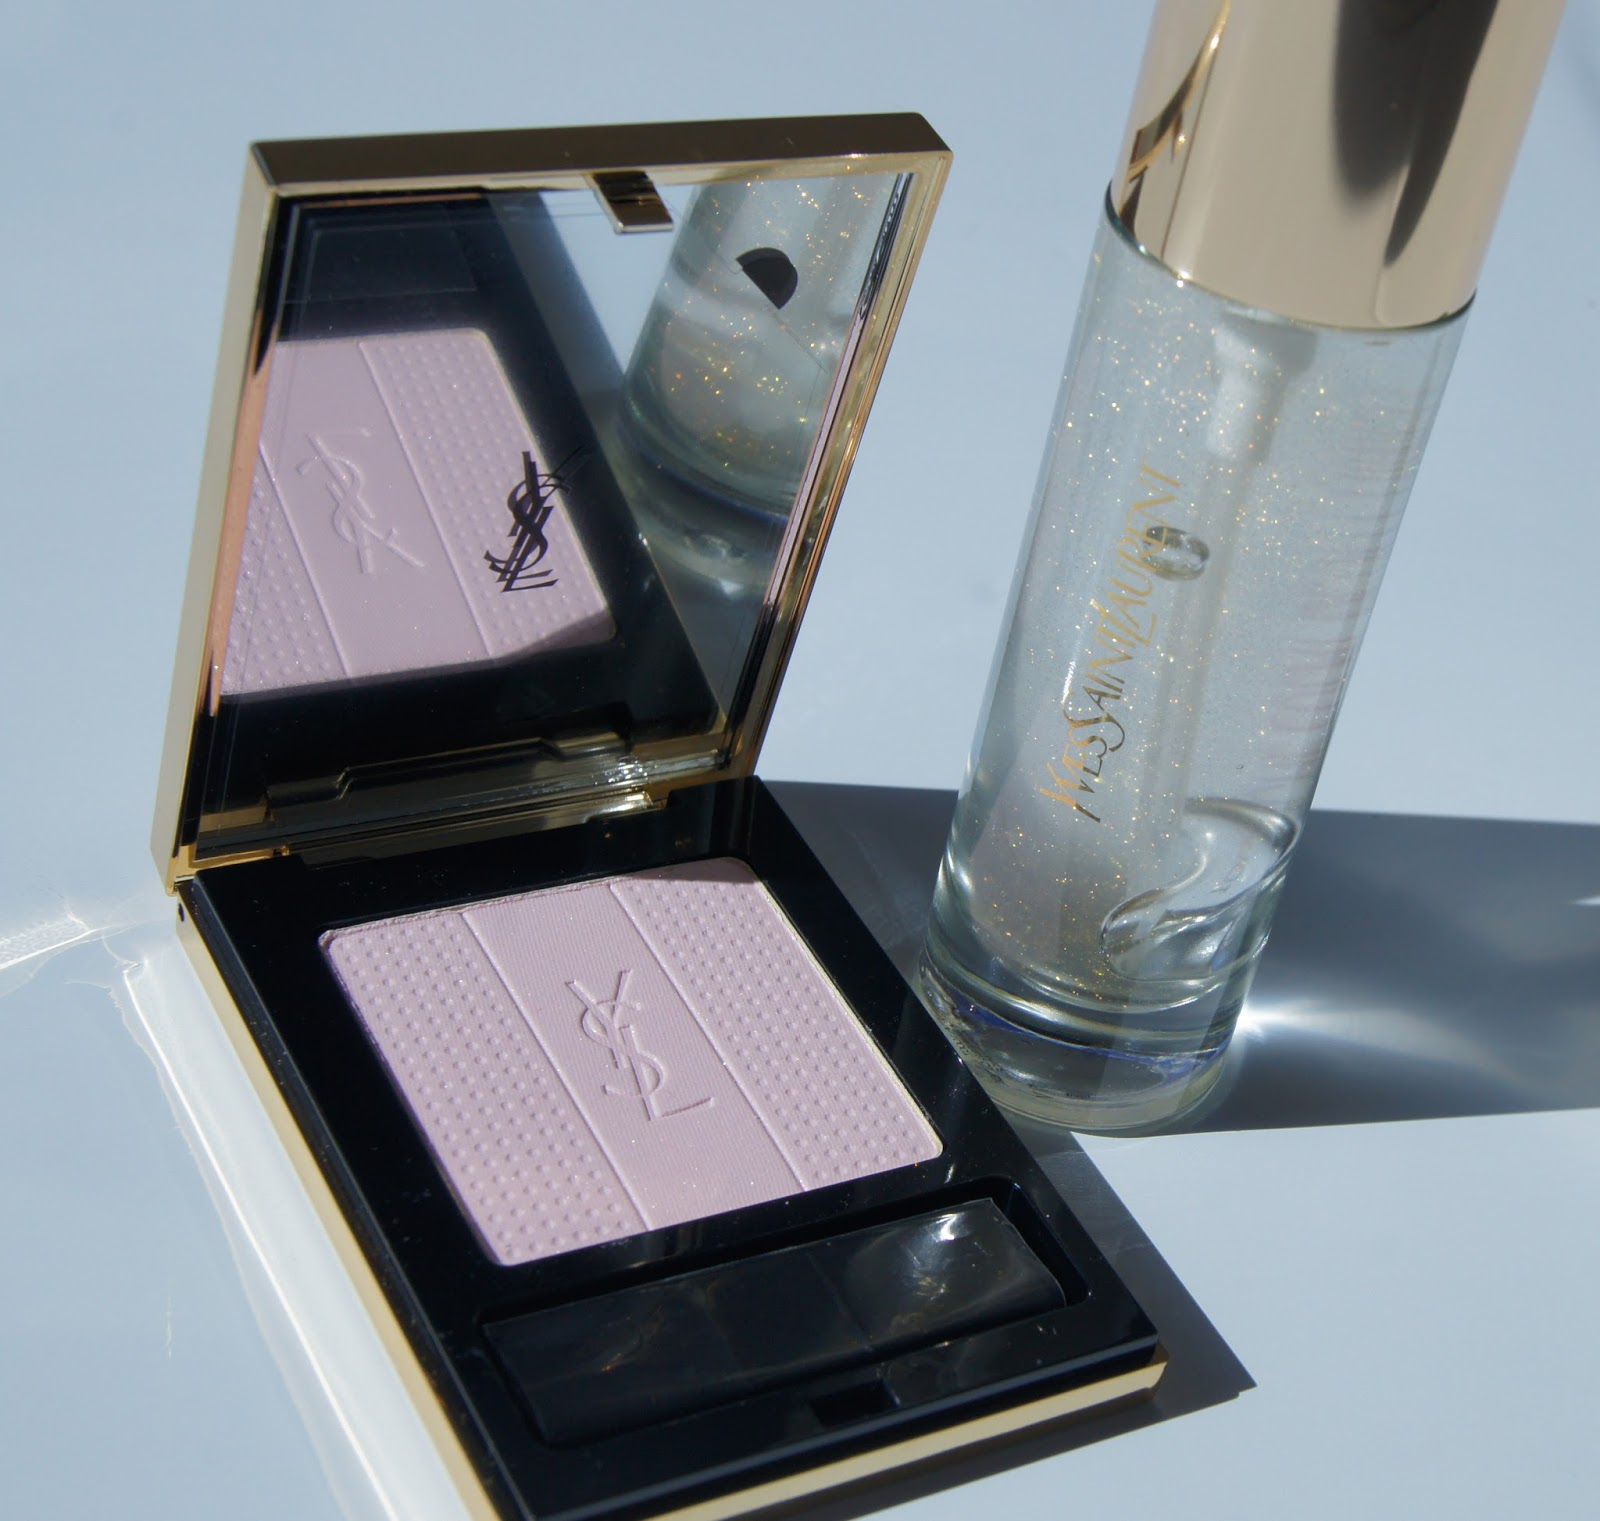 YSL Palette Lumiere De Jour and Touche Eclat Blur Primer review